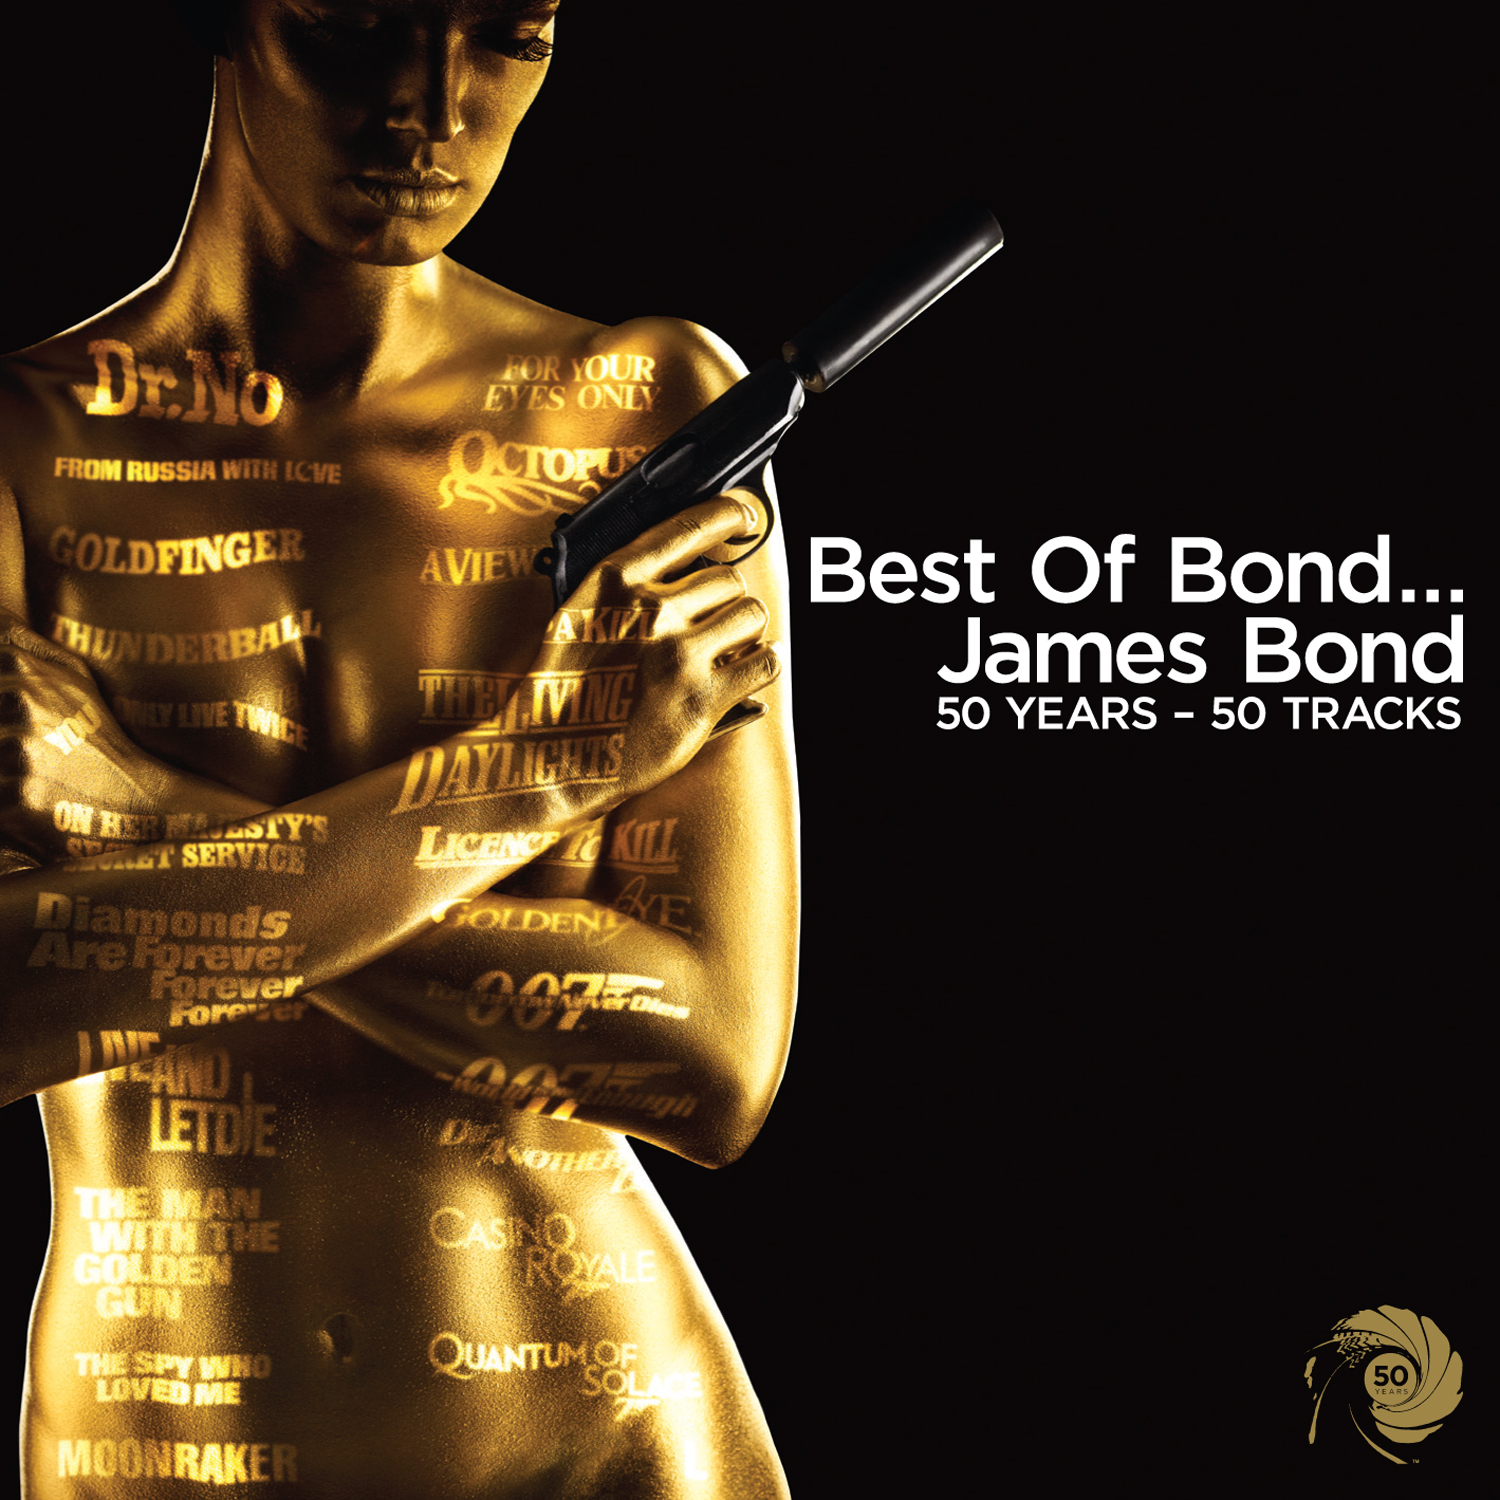 best-of-bond-james-bond-50-years-50-tracks-2cd-cover-art.jpg